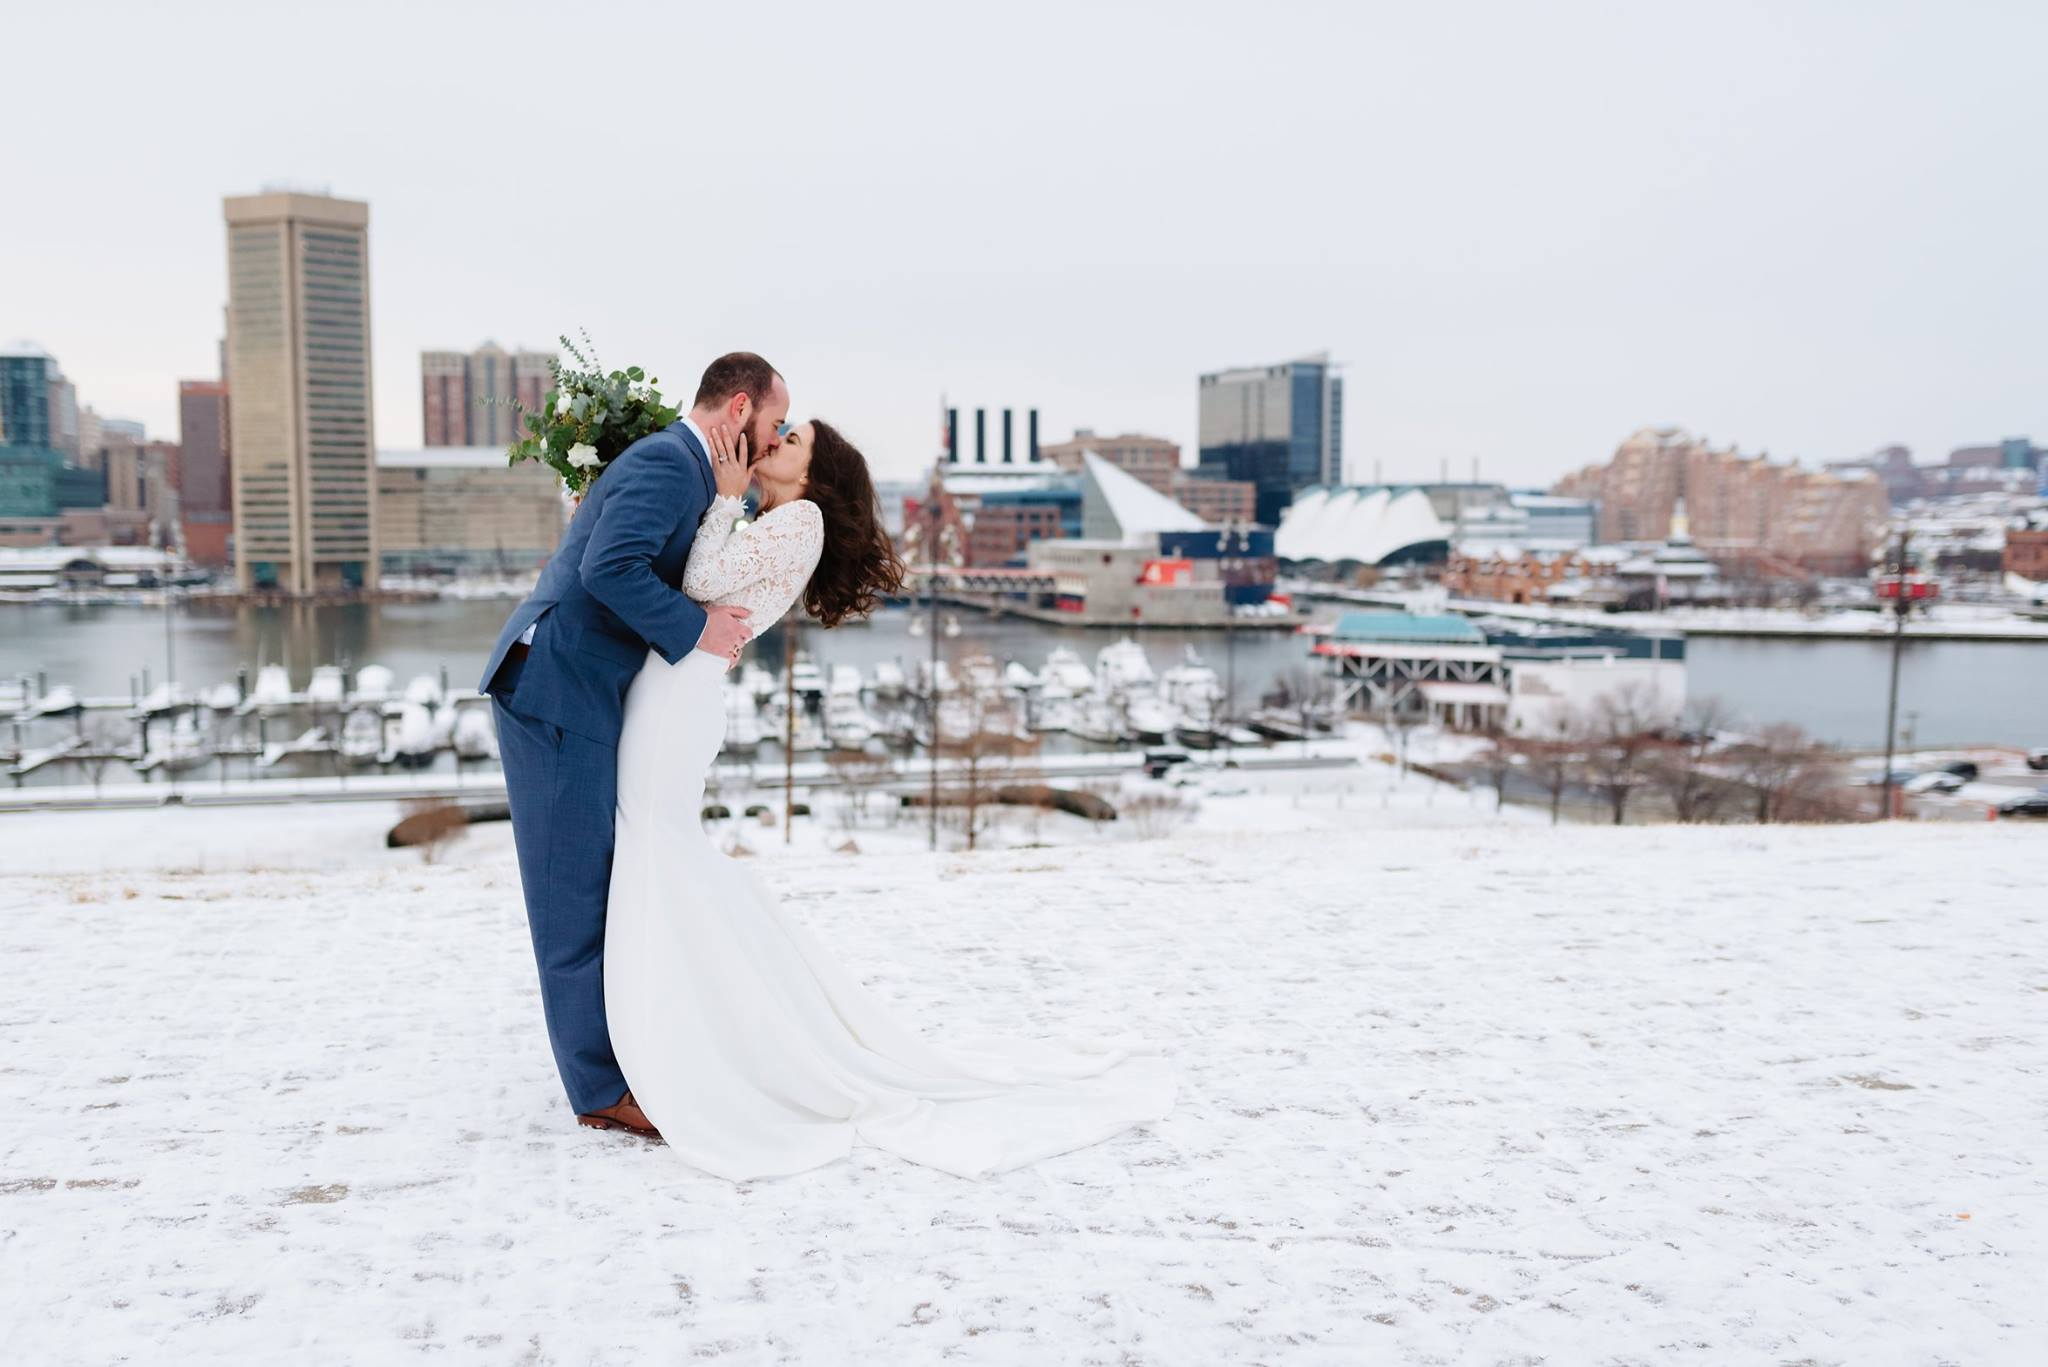 Allison & Matt - Tabrizi's | Baltimore, MD